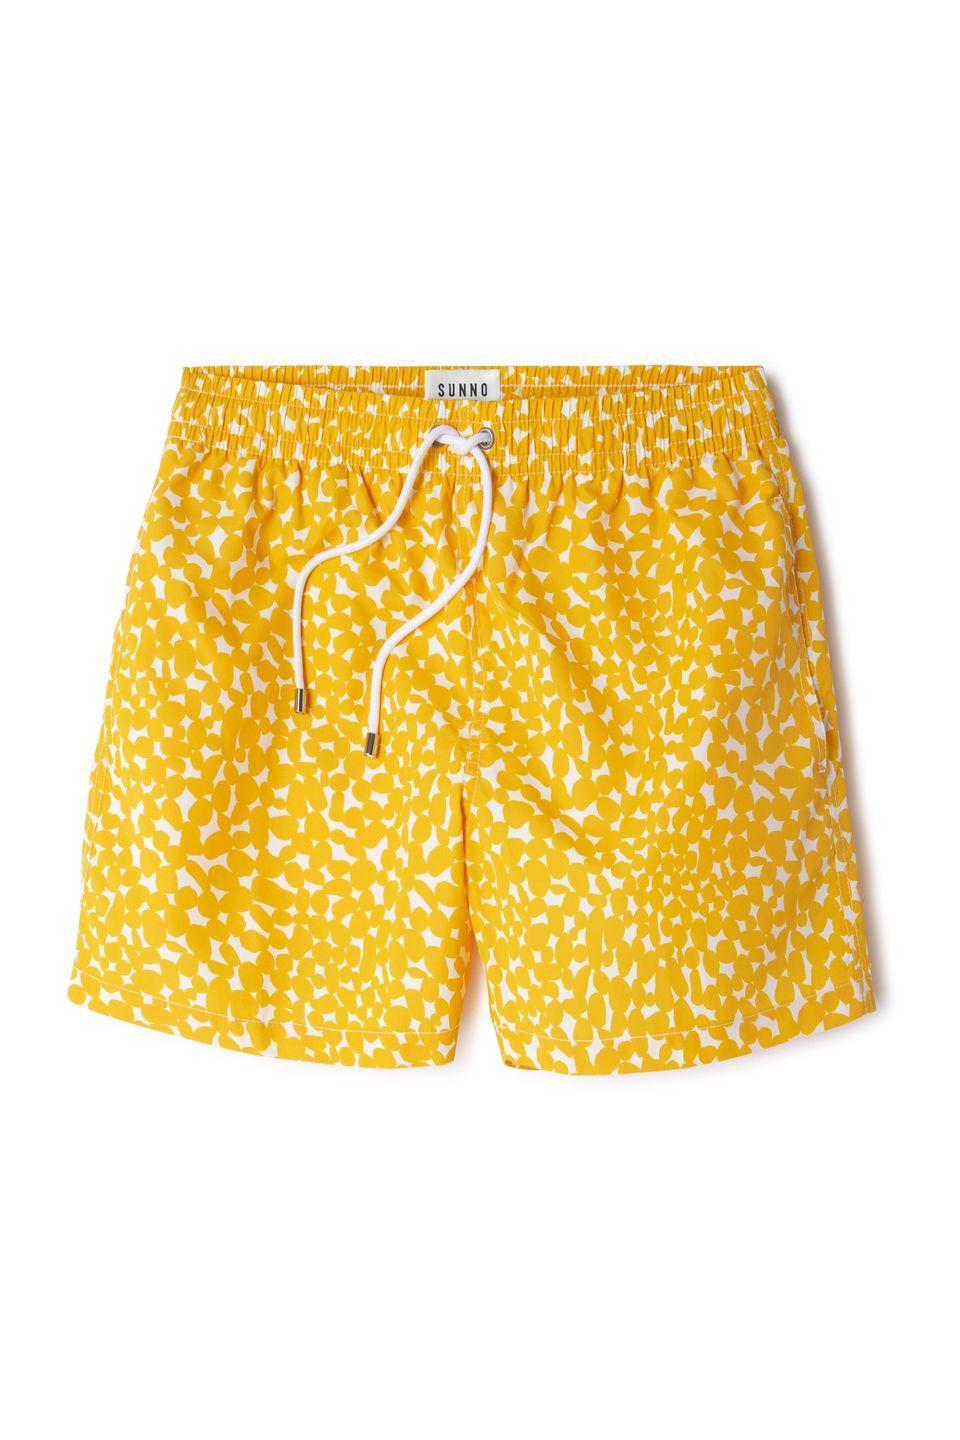 """<p>Bañador modelo Yellow Stones, de <strong>Sunno by Bene Cape </strong>(75 euros).</p><p><strong><a class=""""link rapid-noclick-resp"""" href=""""https://www.sunnobybenecape.com/collections/all-products/products/stones-yellow-swim-short?variant=21757256400974"""" rel=""""nofollow noopener"""" target=""""_blank"""" data-ylk=""""slk:COMPRAR"""">COMPRAR</a><br></strong></p>"""